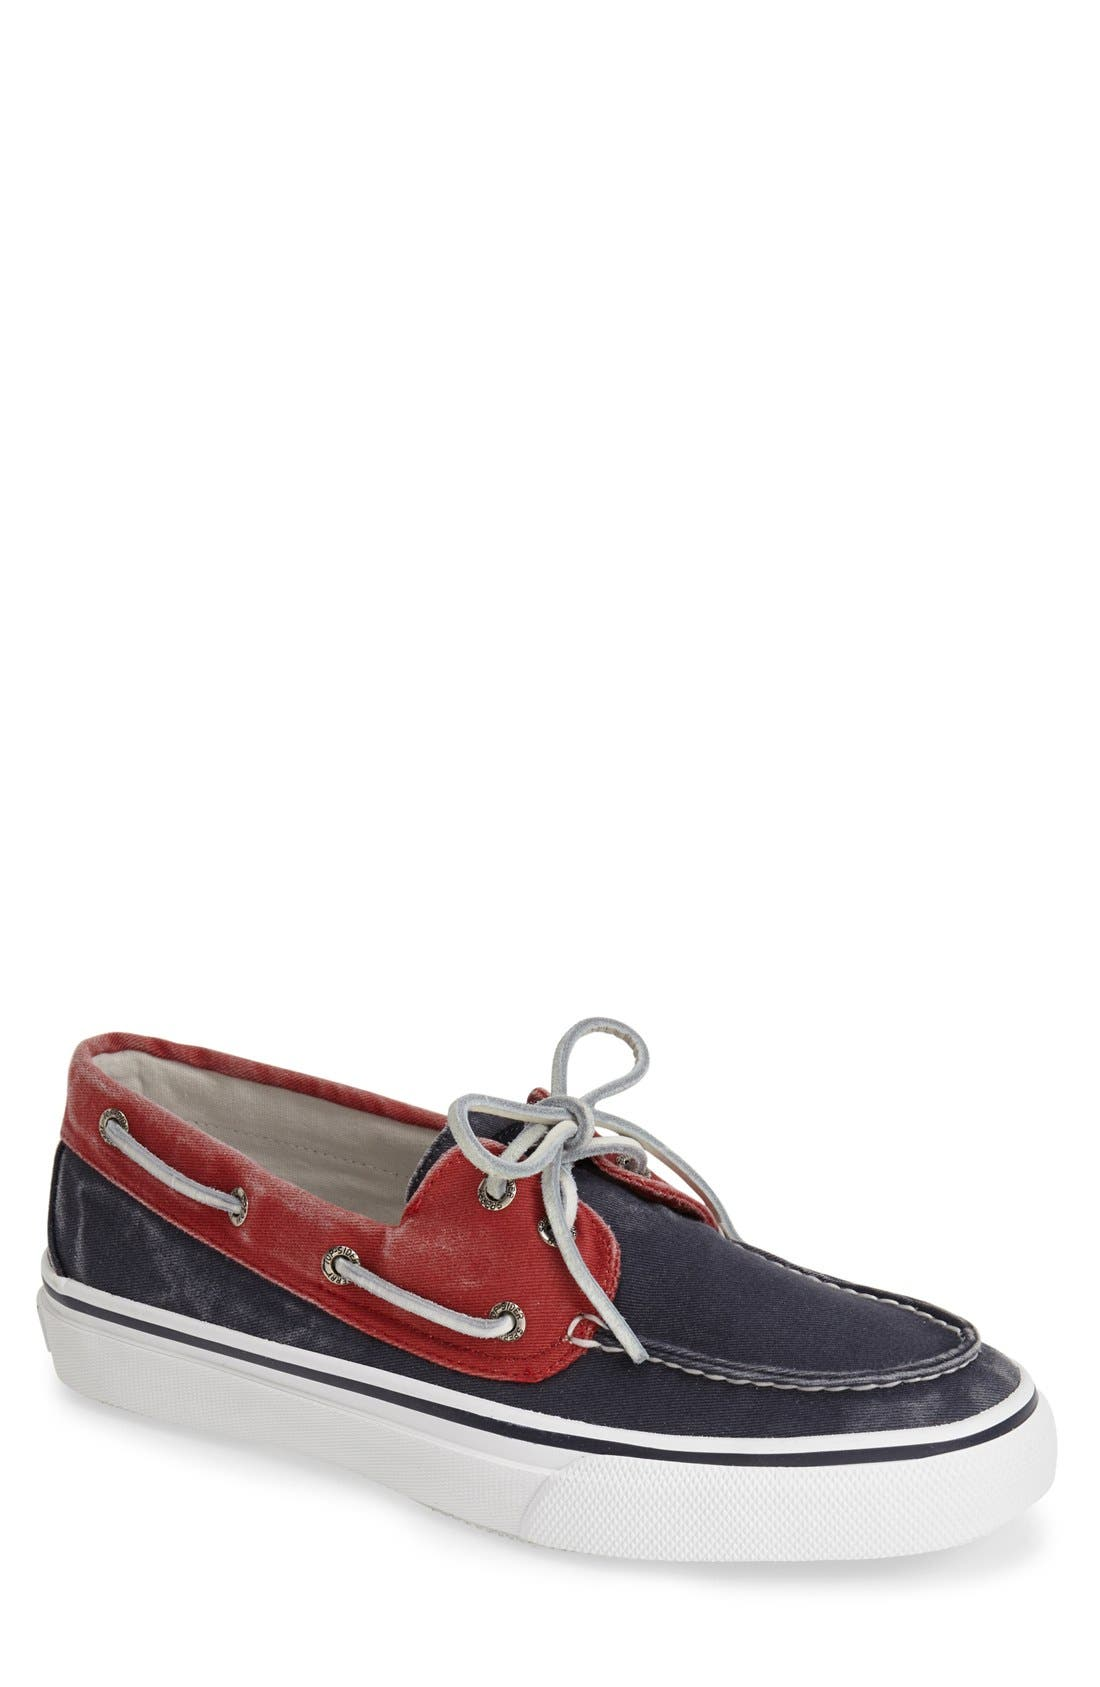 Main Image - Sperry 'Bahama' Boat Shoe